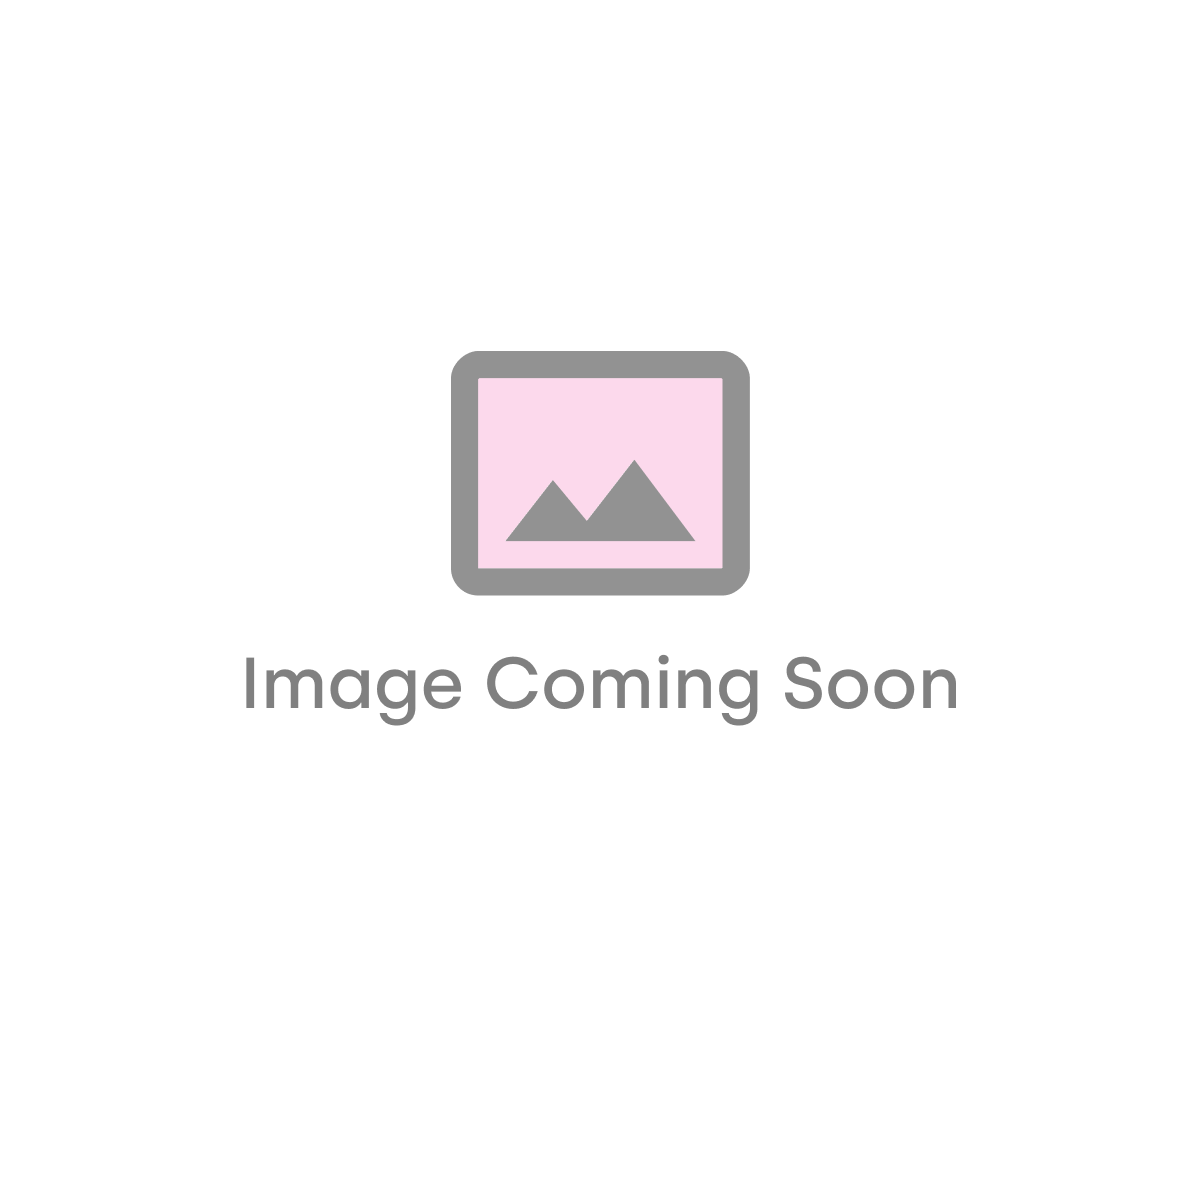 Lusso Panel Essentials 5mm H Joint Silver - 2700mm (19560)